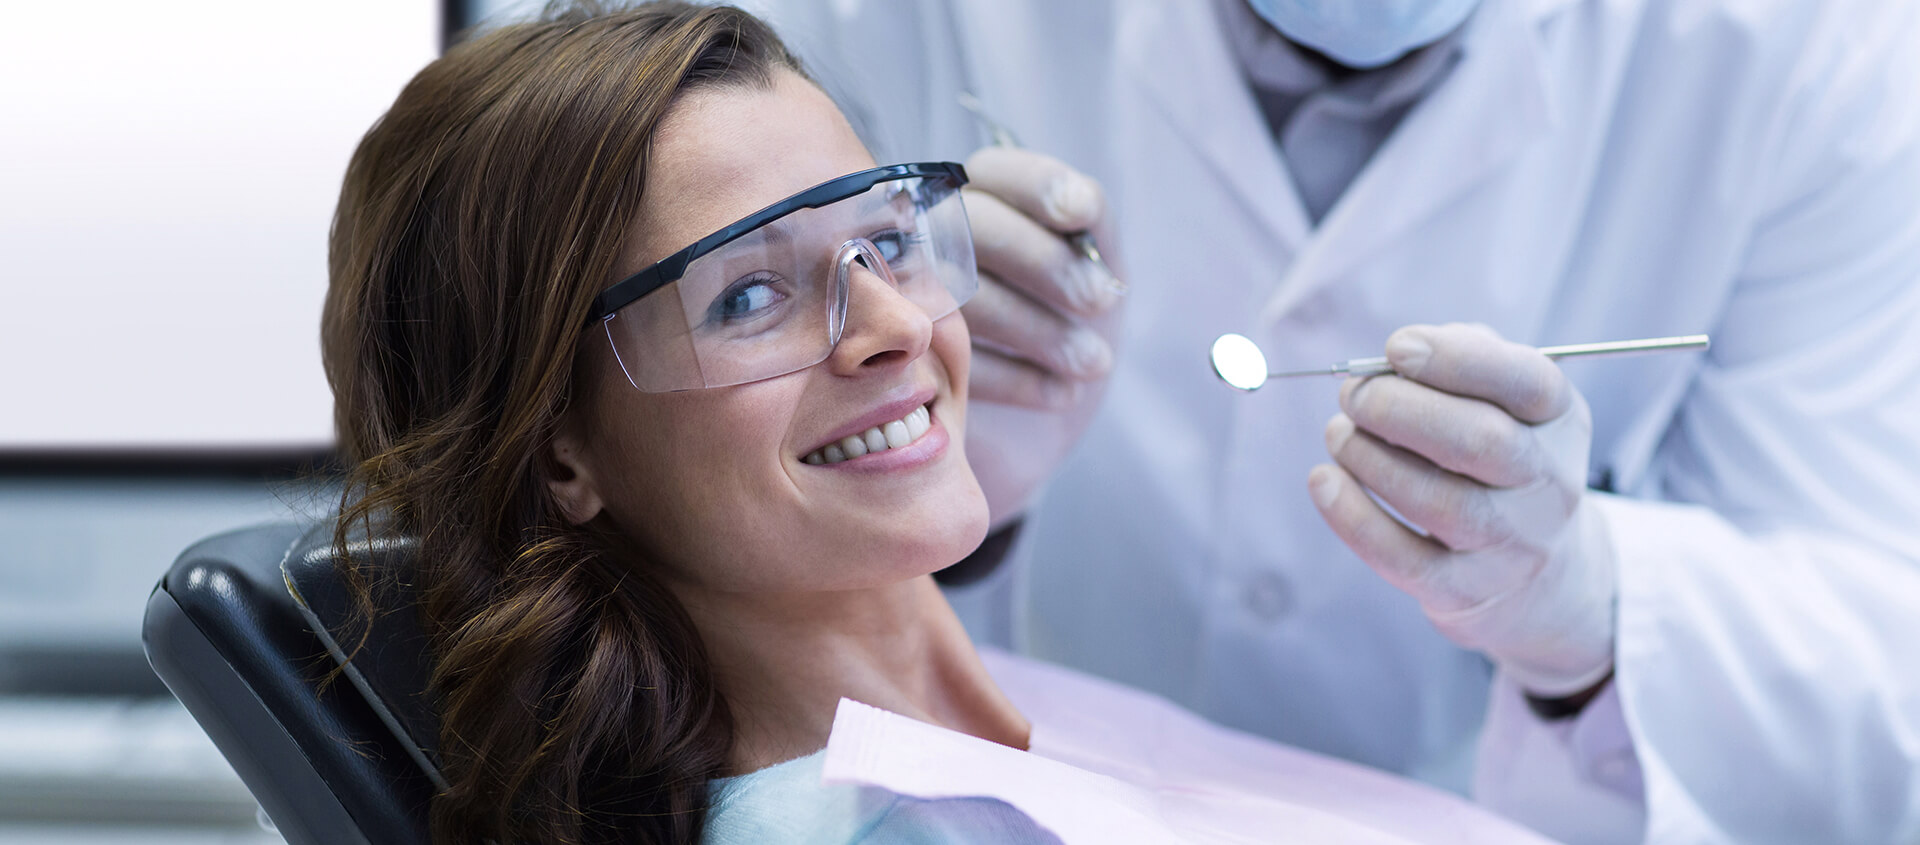 Cosmetic Dental Treatments for a Smile that Exudes Health and Confidence in Brandon, FL Area